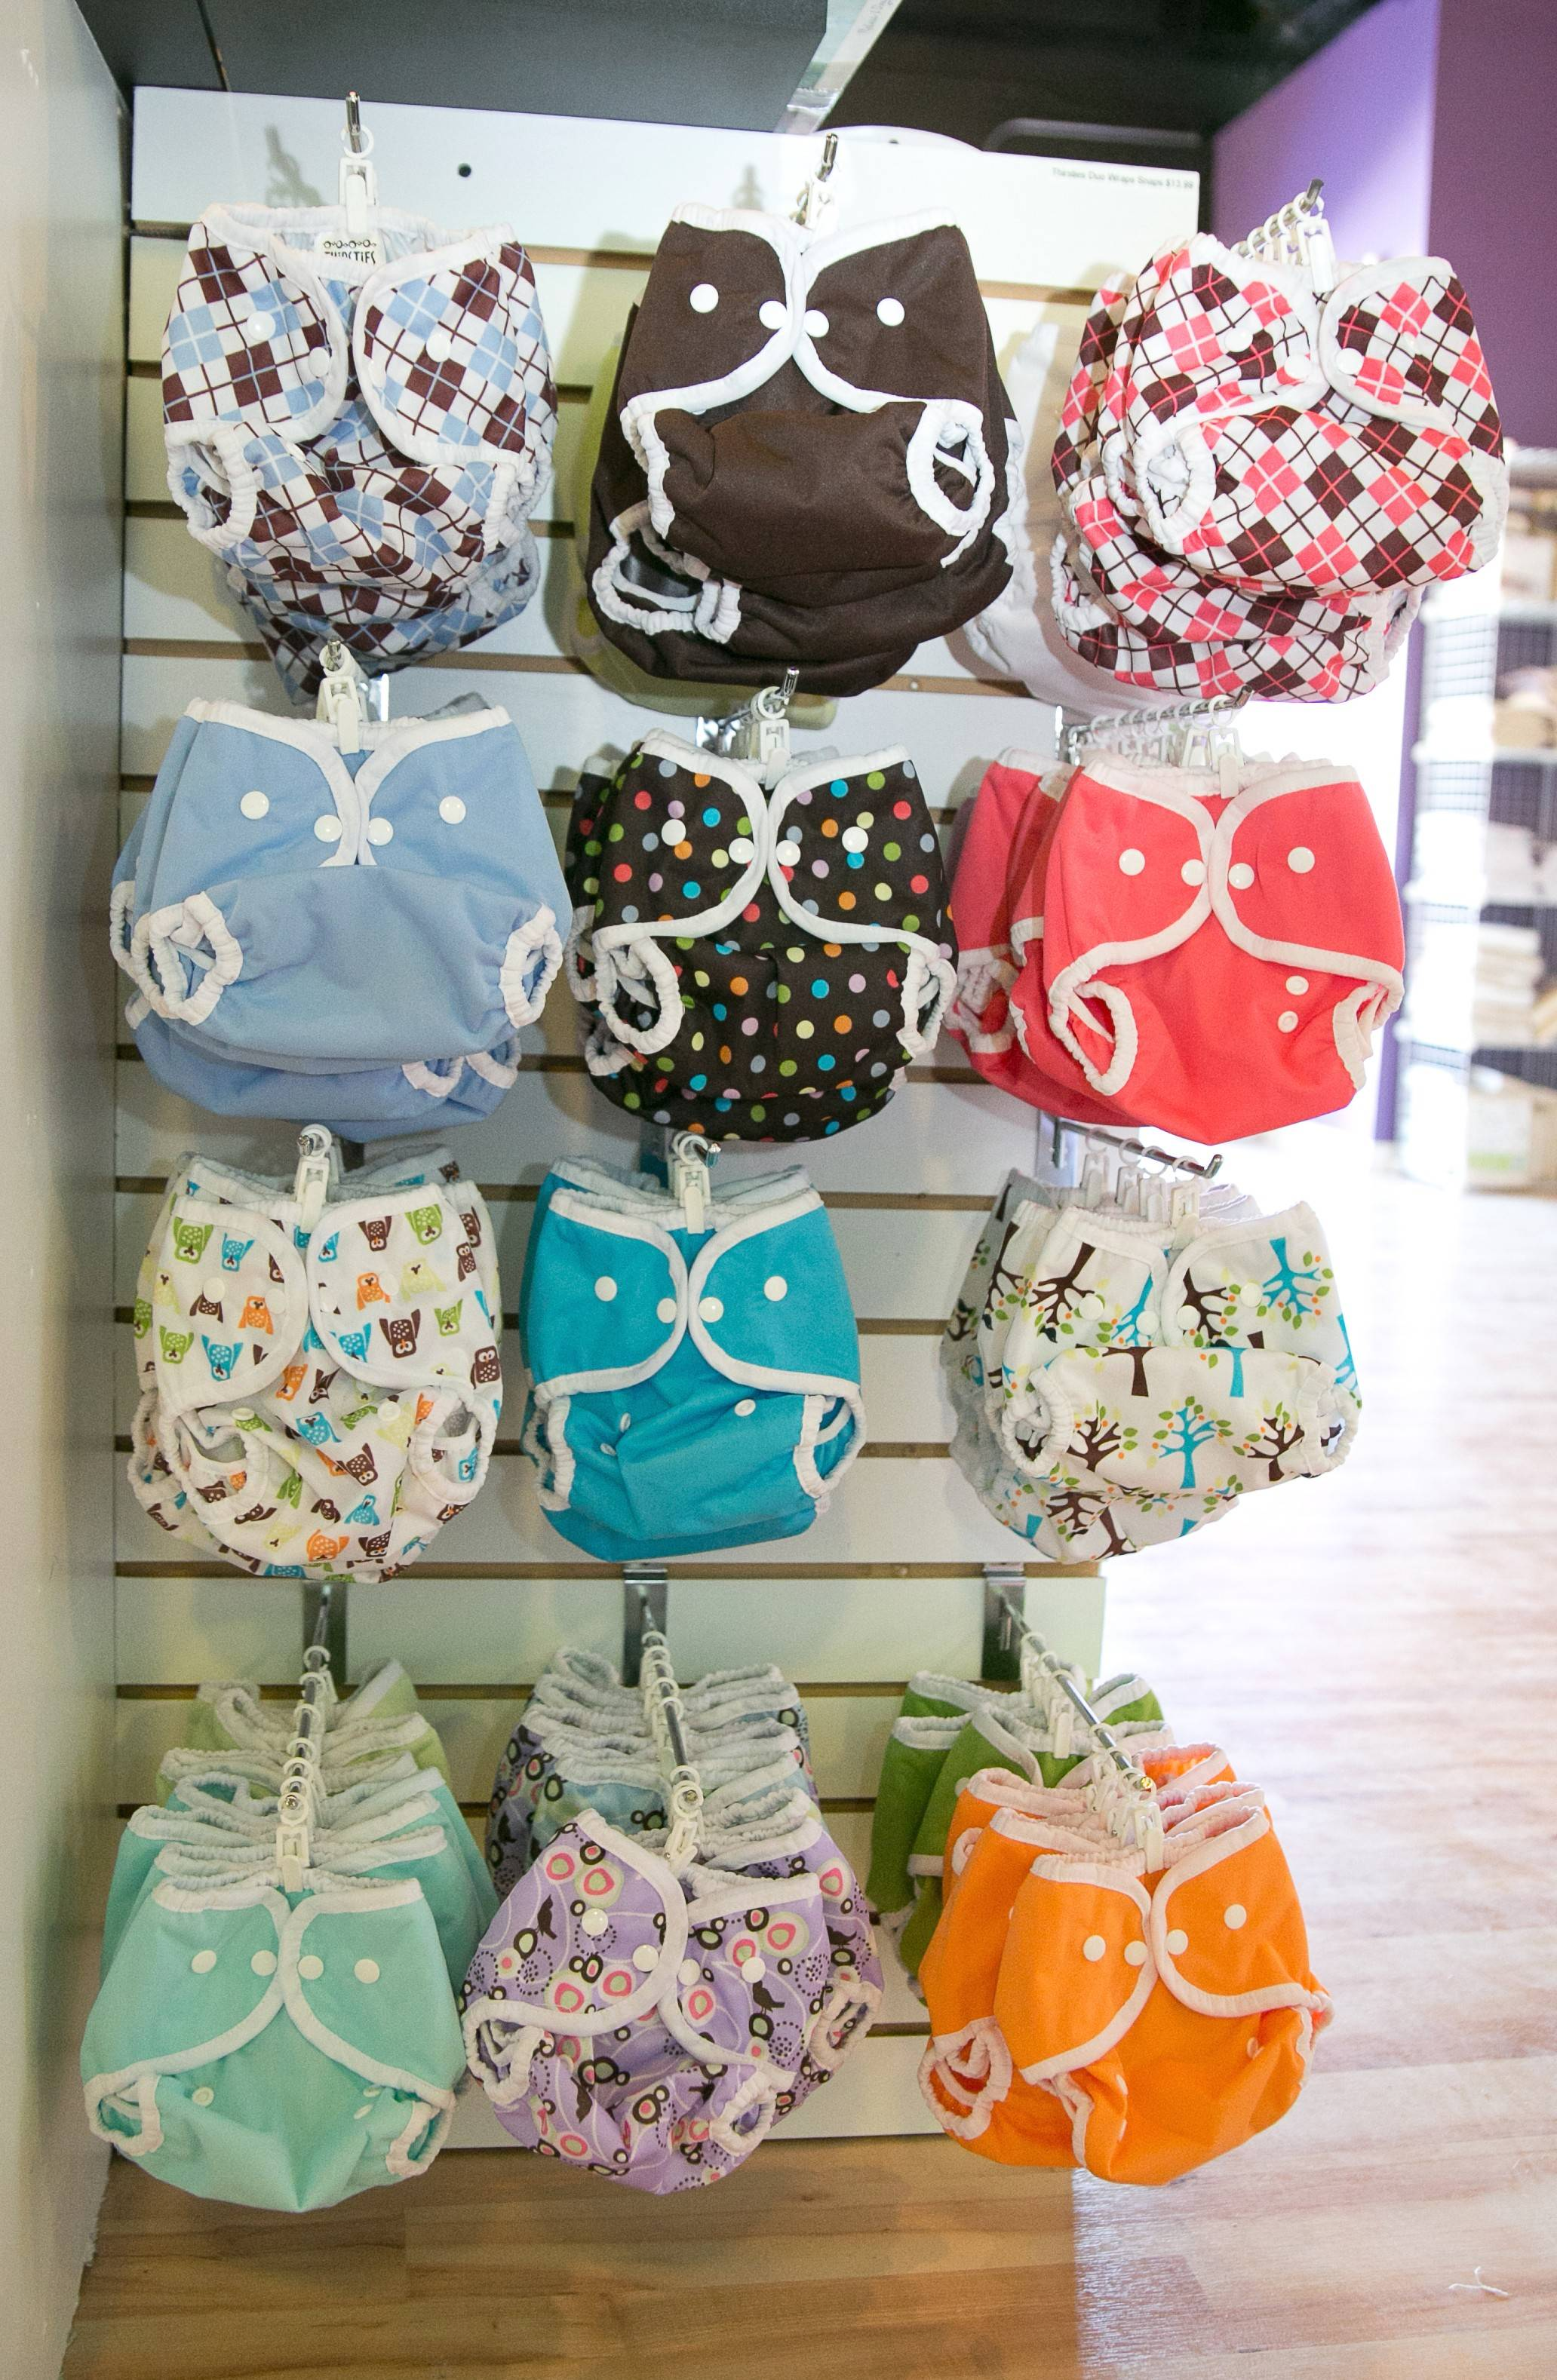 Cloth diapers comes in all sorts of designs at Fluff Envy in South Elgin.